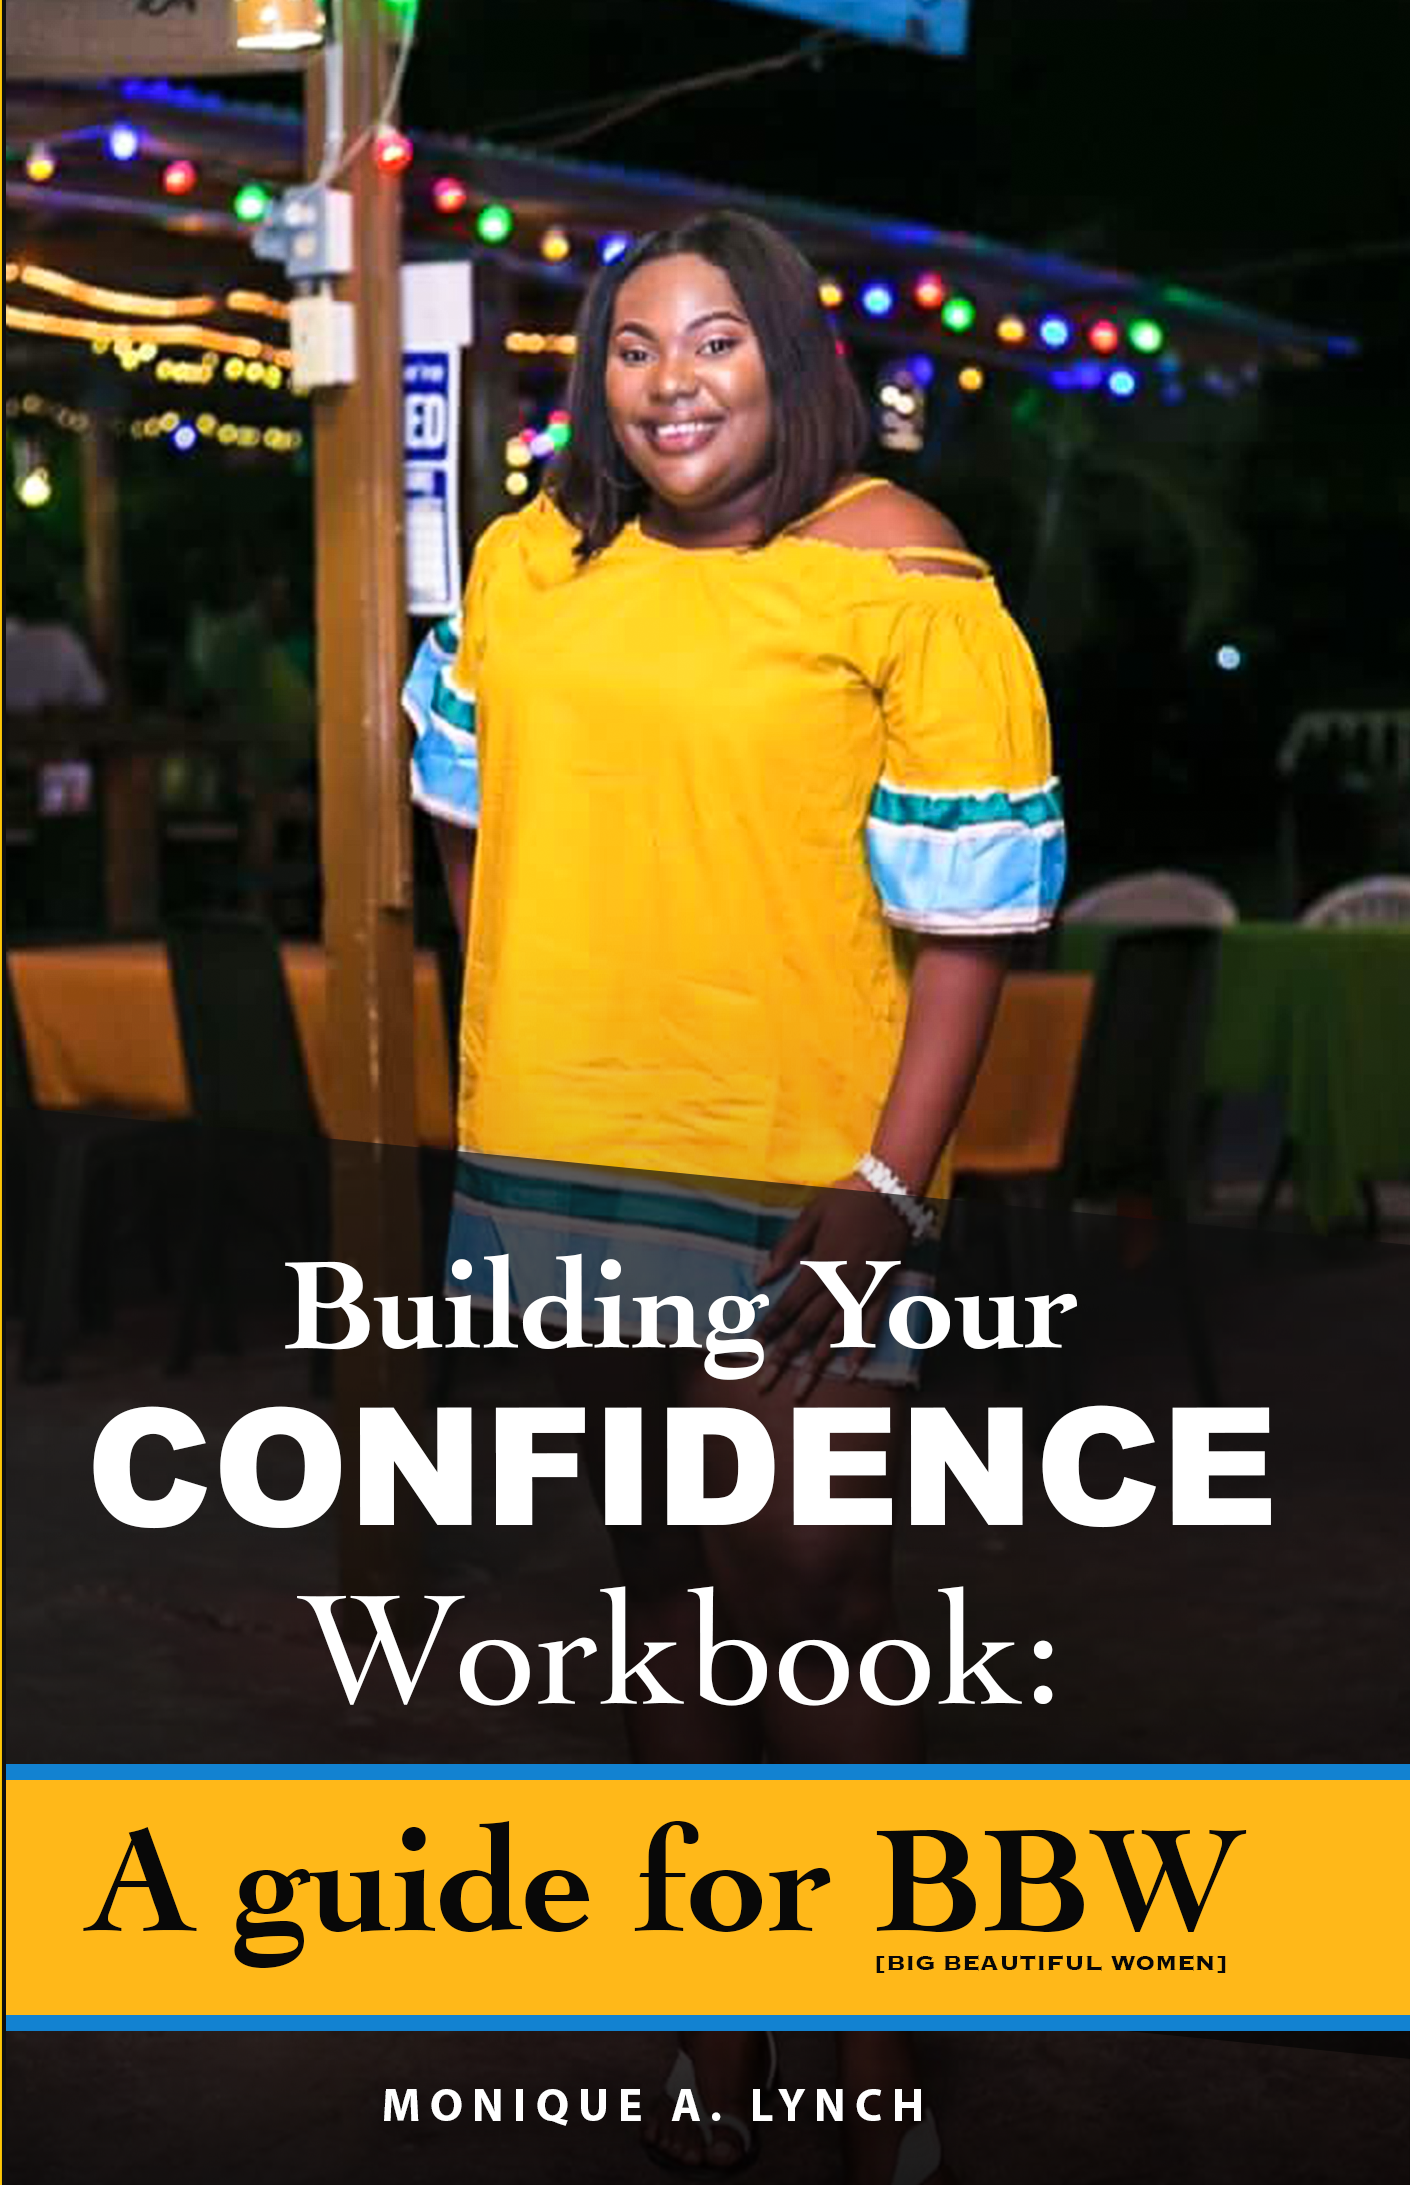 Building Your Confidence Workbook: A guide for BBW